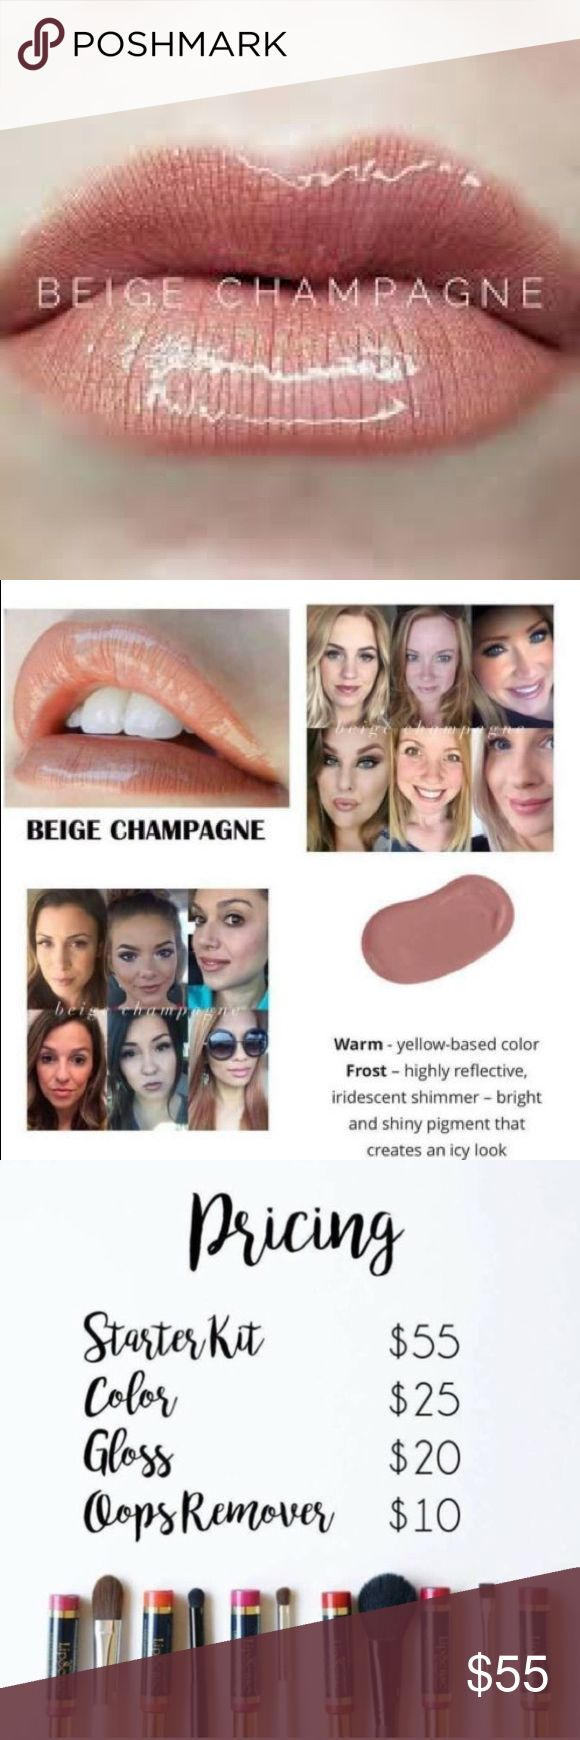 🎉 Lipsense Beige Champagne 💋 Authentic🌟New & Sealed 💋 Wayyy better than lipstick 💄 Lipsense🌟 Beige Champagne color ONLY! 🍾🥂 If already have a set this is perfect for you! Great💰 If new to Lipsense I definitely recommend getting a starter kit;  An amazing Lipsense starter kit includes color, gloss and remover! Ex: Beige Champagne+Glossy+Oops  I have Gloss, Oops & starter kit in separate listing!💋 Lipsense Makeup Lipstick